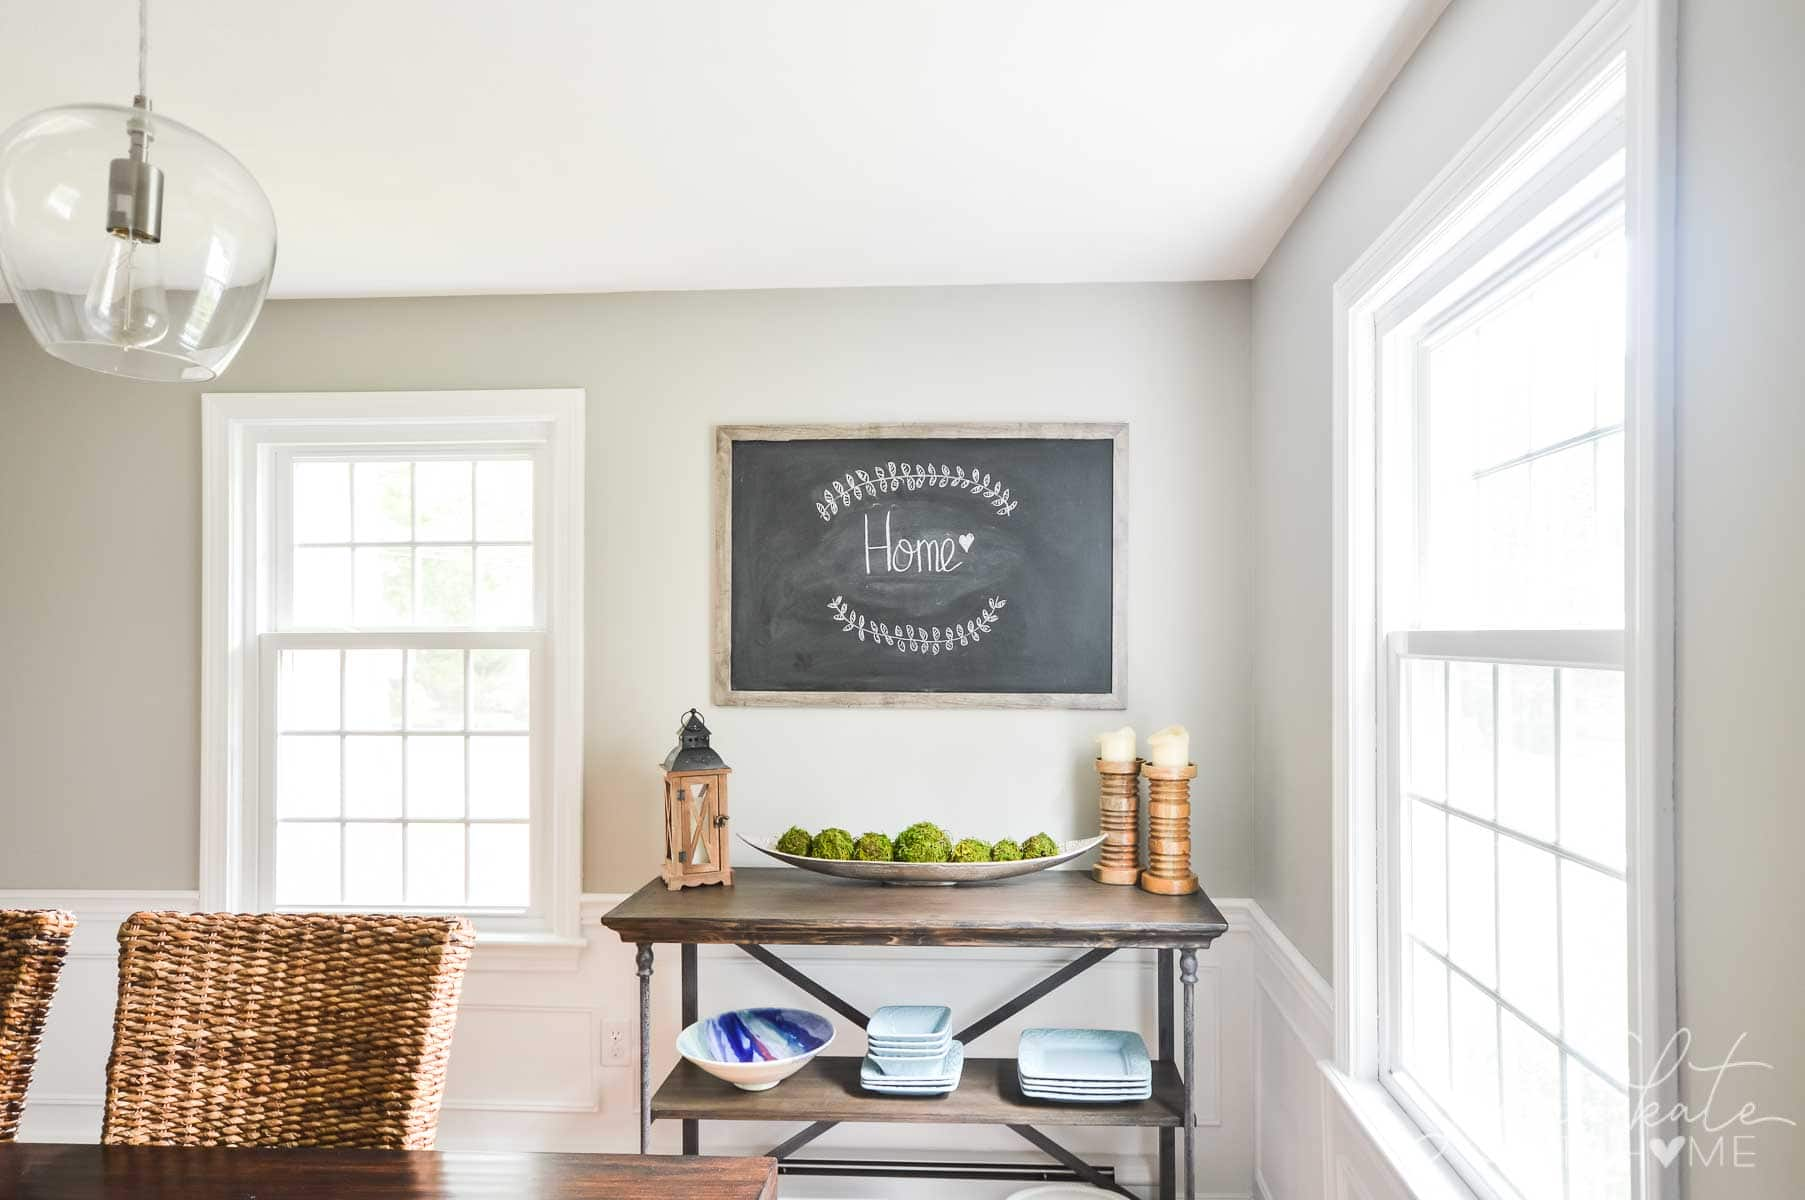 A corner of the dining room with a blackboard displaying chalk art and a side table with various decor items and extra plates/bowls